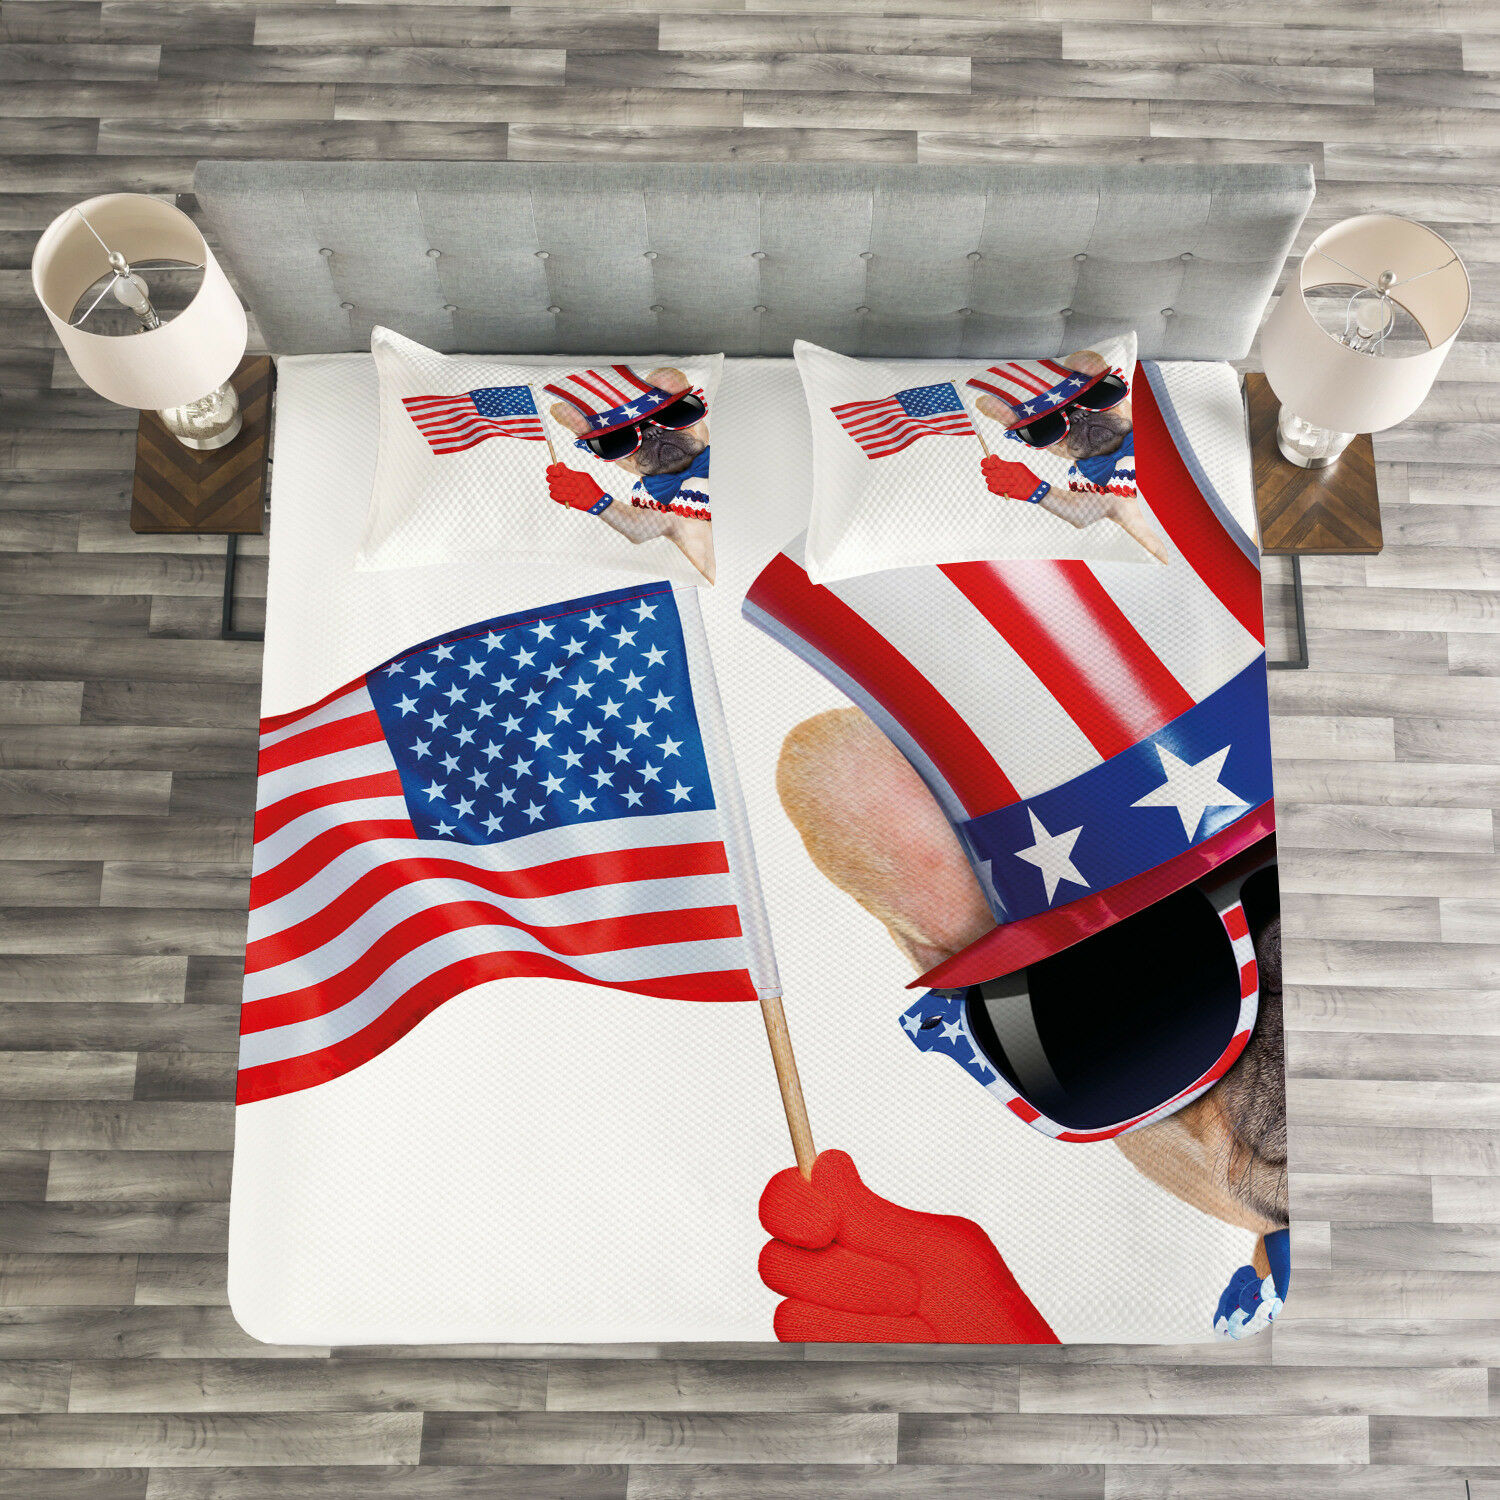 4th of July Quilted Bedspread & Pillow Shams Set, Patriotic Pug Dog Print